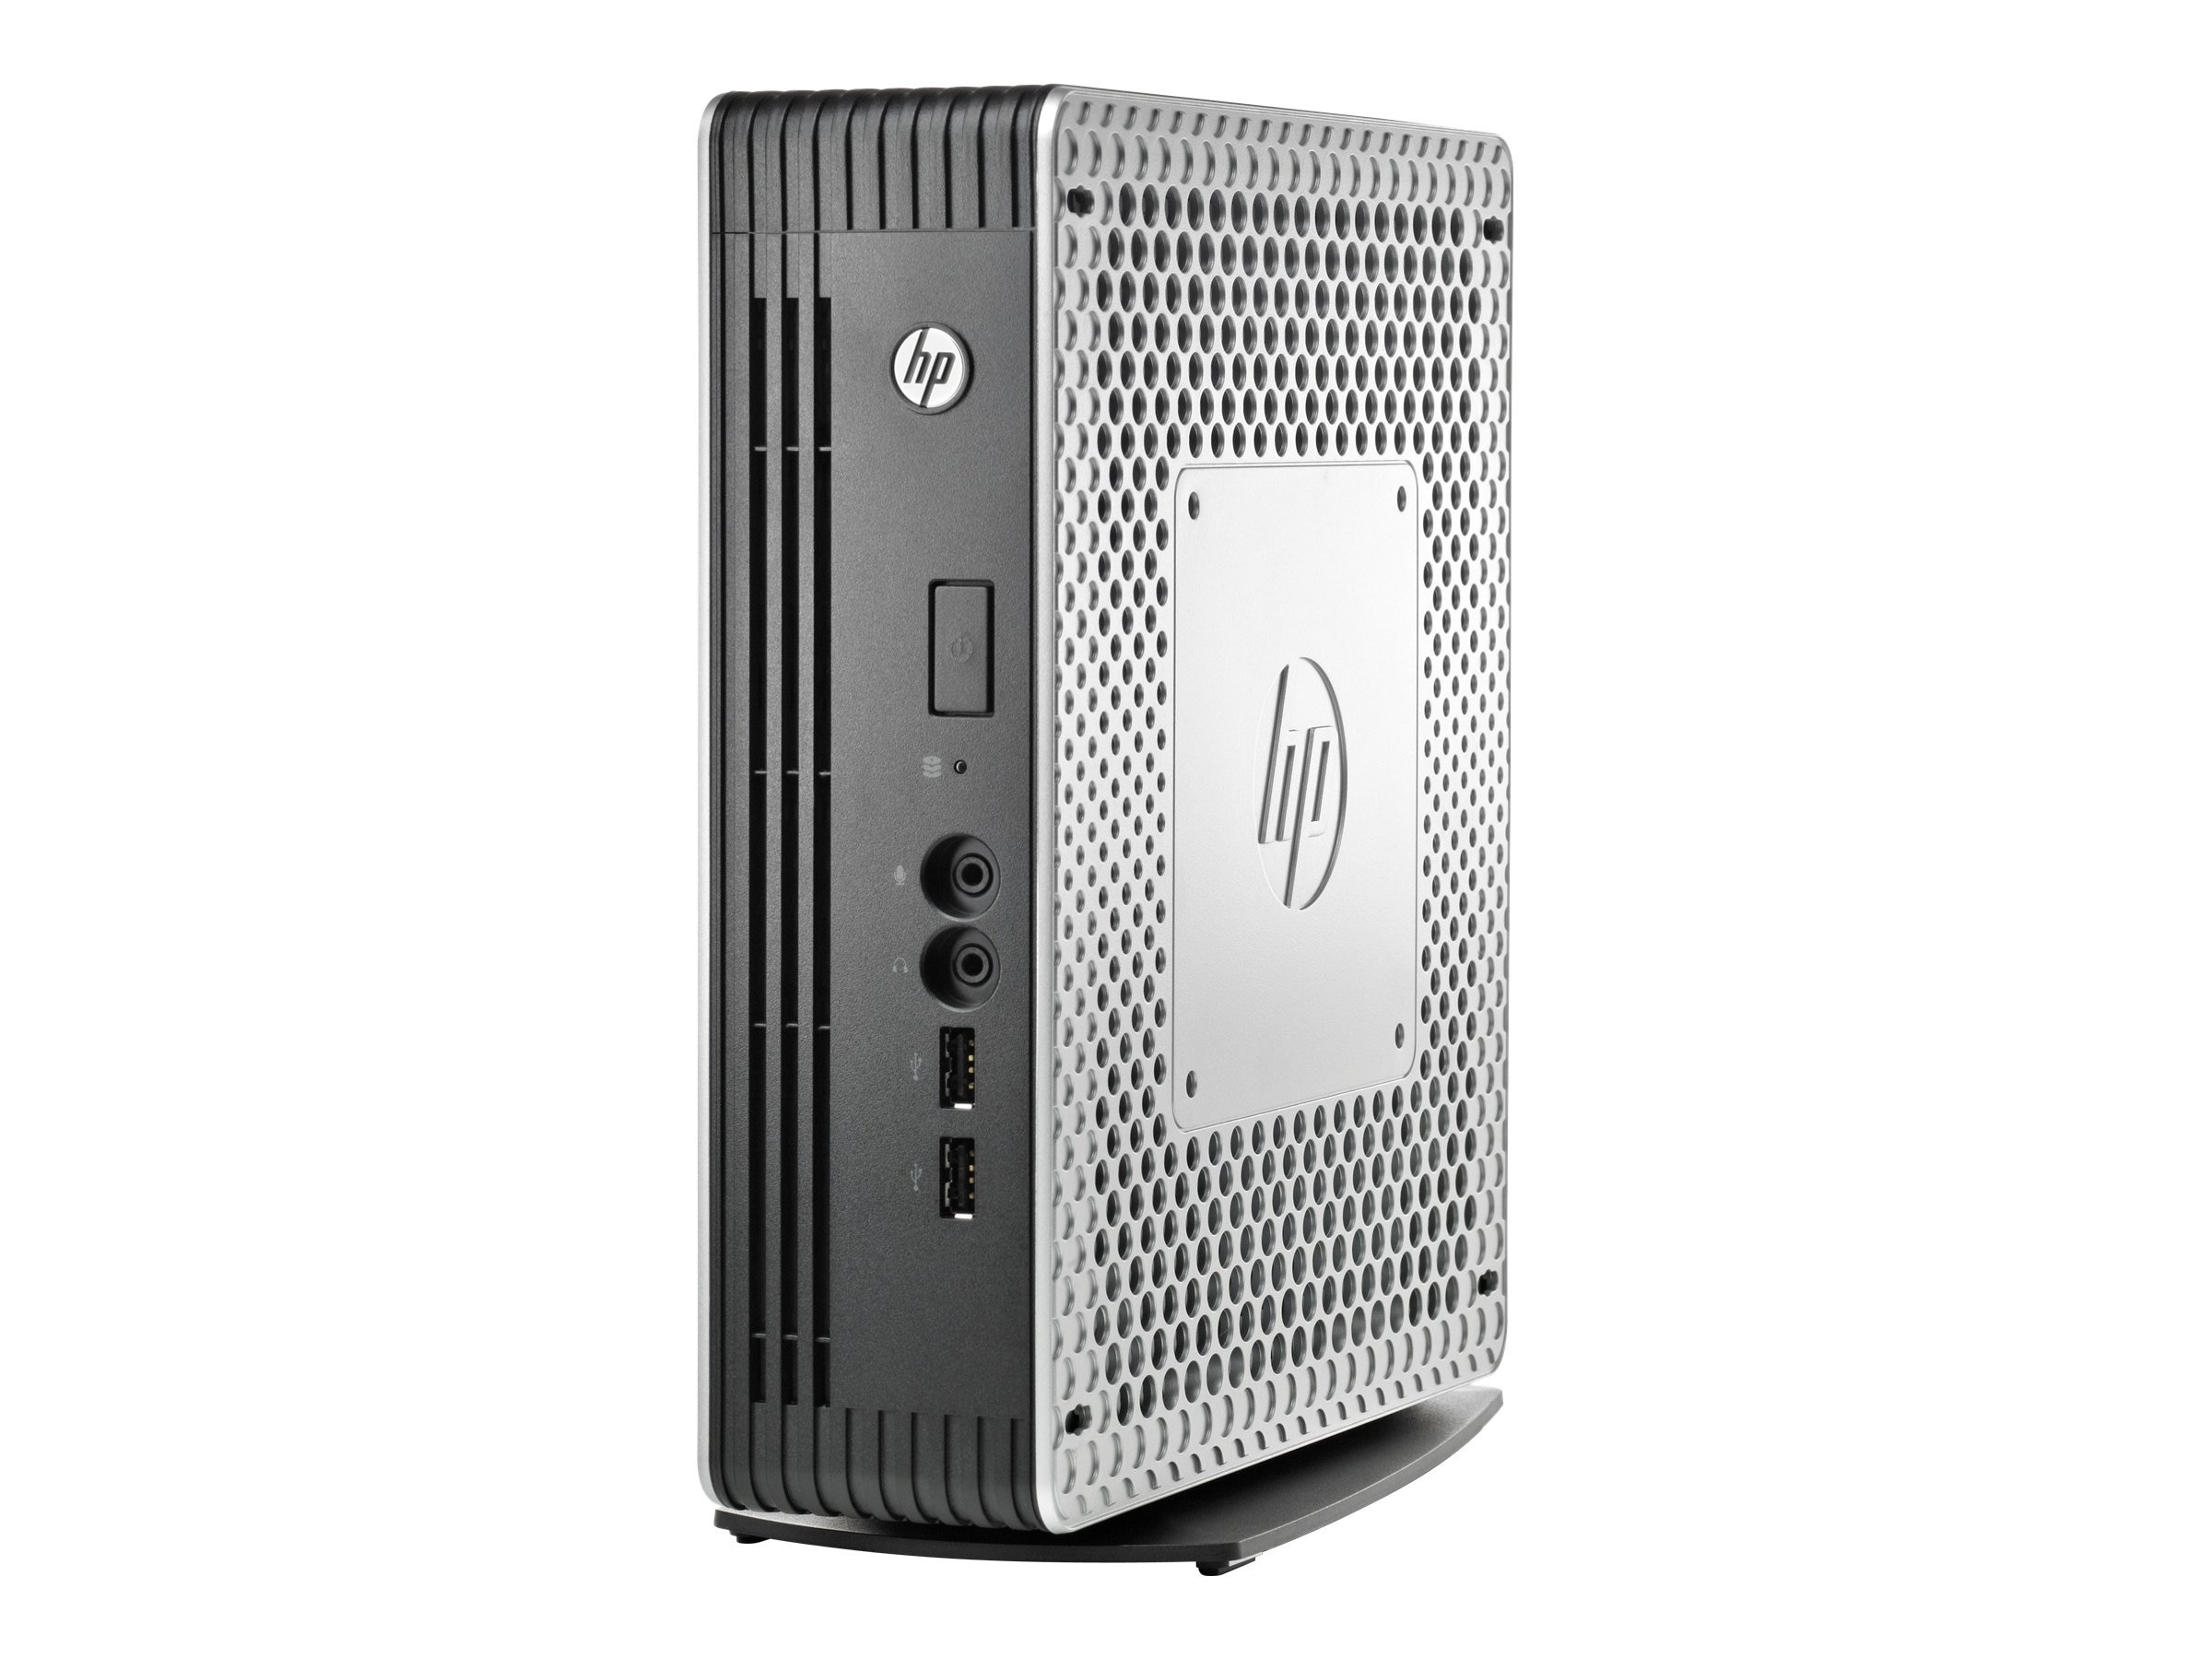 HP Smart Buy t610 PLUS Flexible Thin Client  T56N 1.65GHz 4GB RAM 16GB Flash FirePro2460 GbE abgn WES7E, C9K56UT#ABA, 16453346, Thin Client Hardware